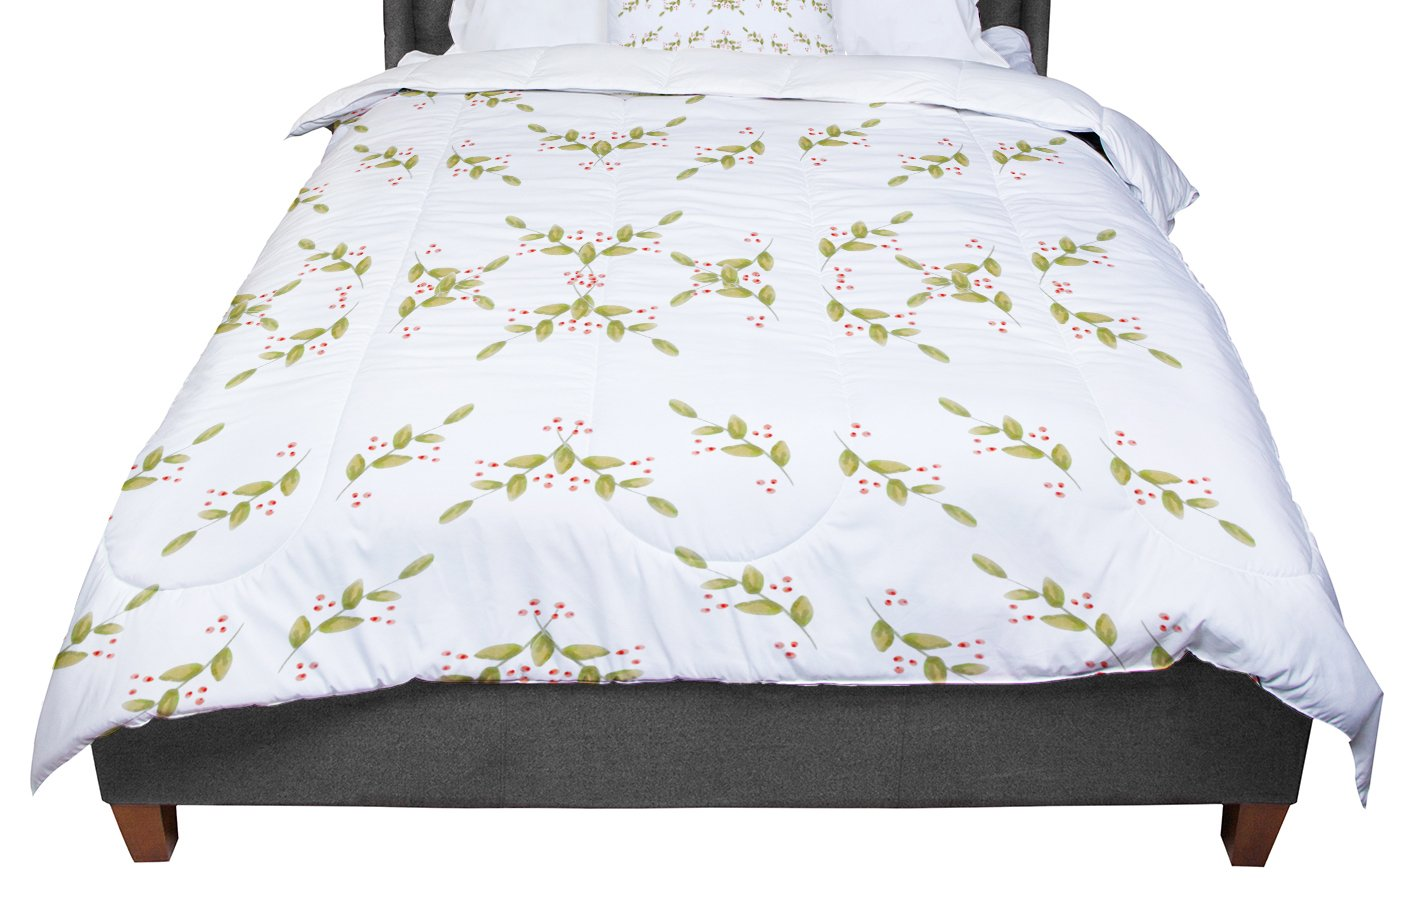 88 X 88 KESS InHouse Jennifer Rizzo Holiday Holly Berries White Green Floral Queen Comforter